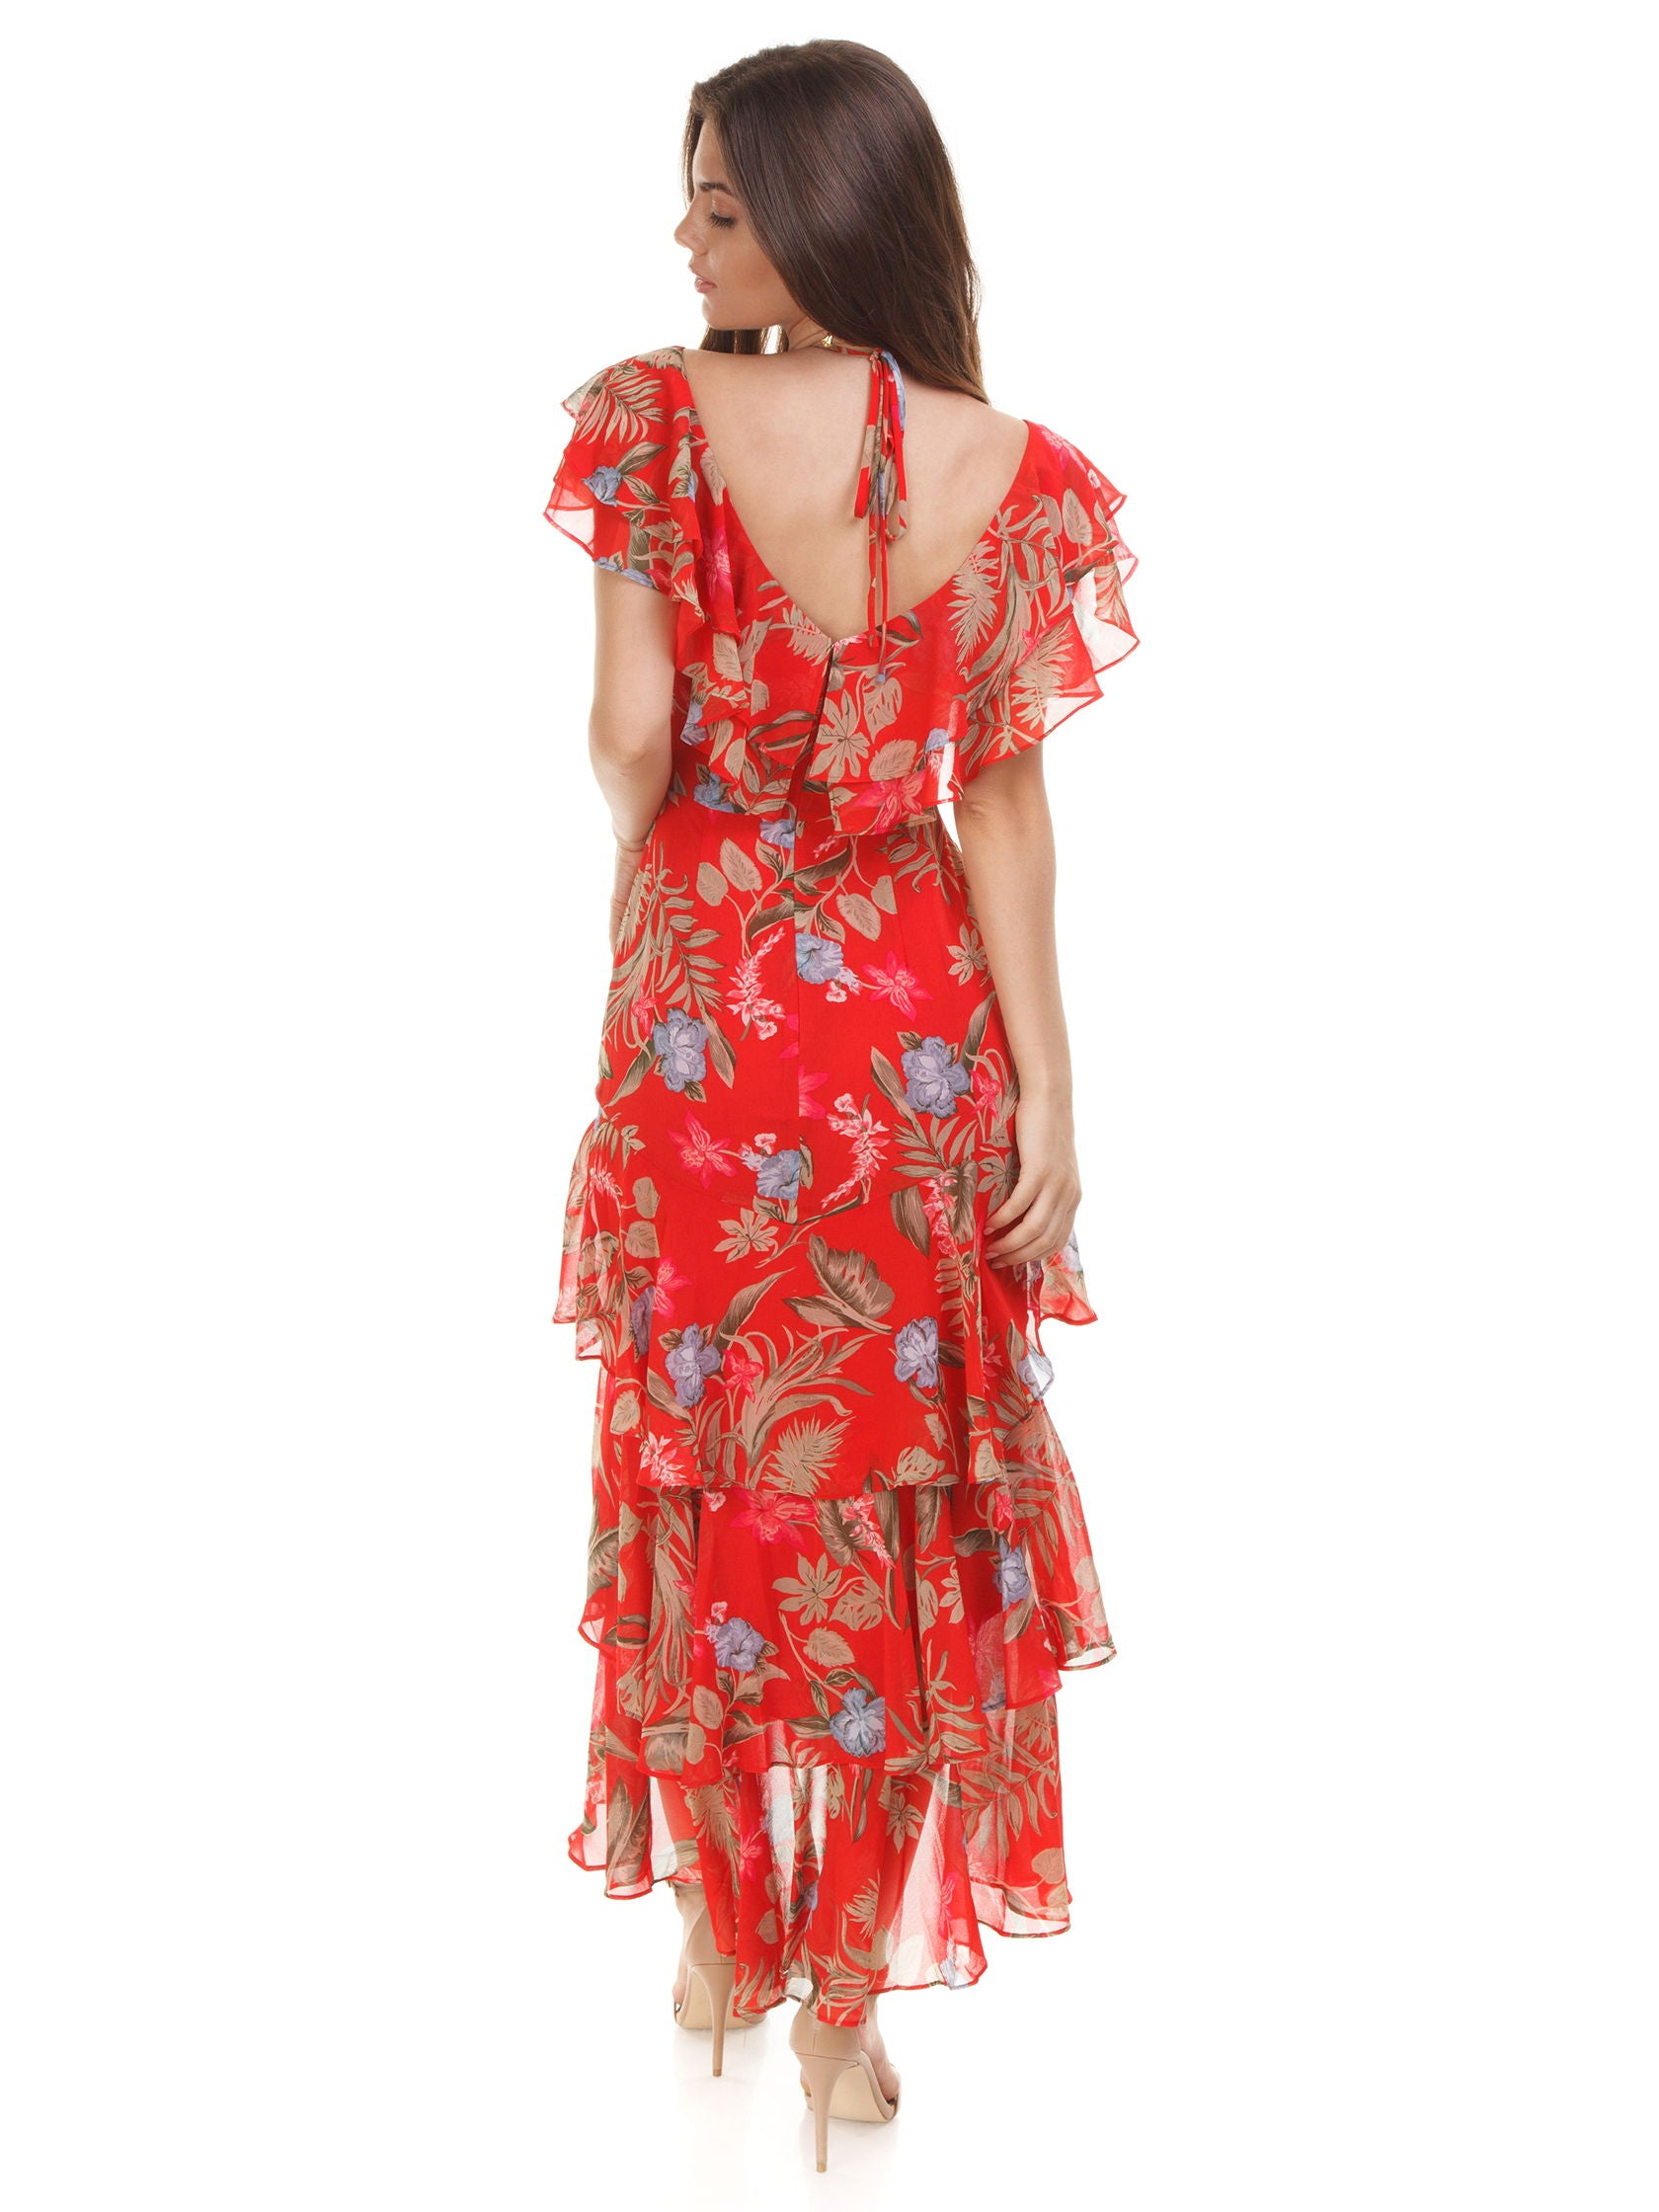 Women wearing a dress rental from WAYF called Chelsea Tiered Ruffle Maxi Dress